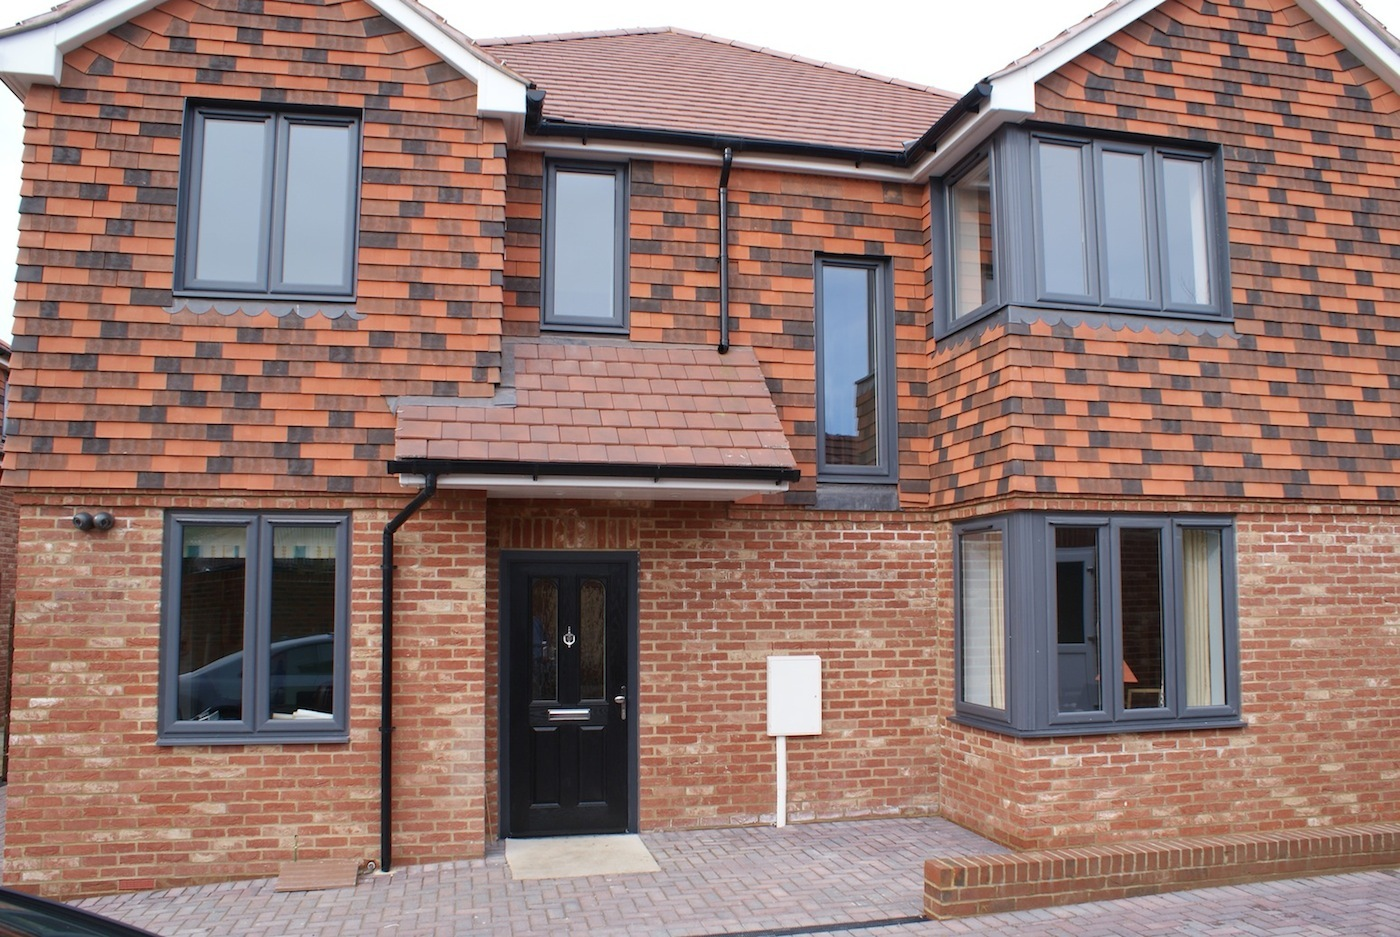 Upvc grey windows and black composite door installed dwl for Composite windows